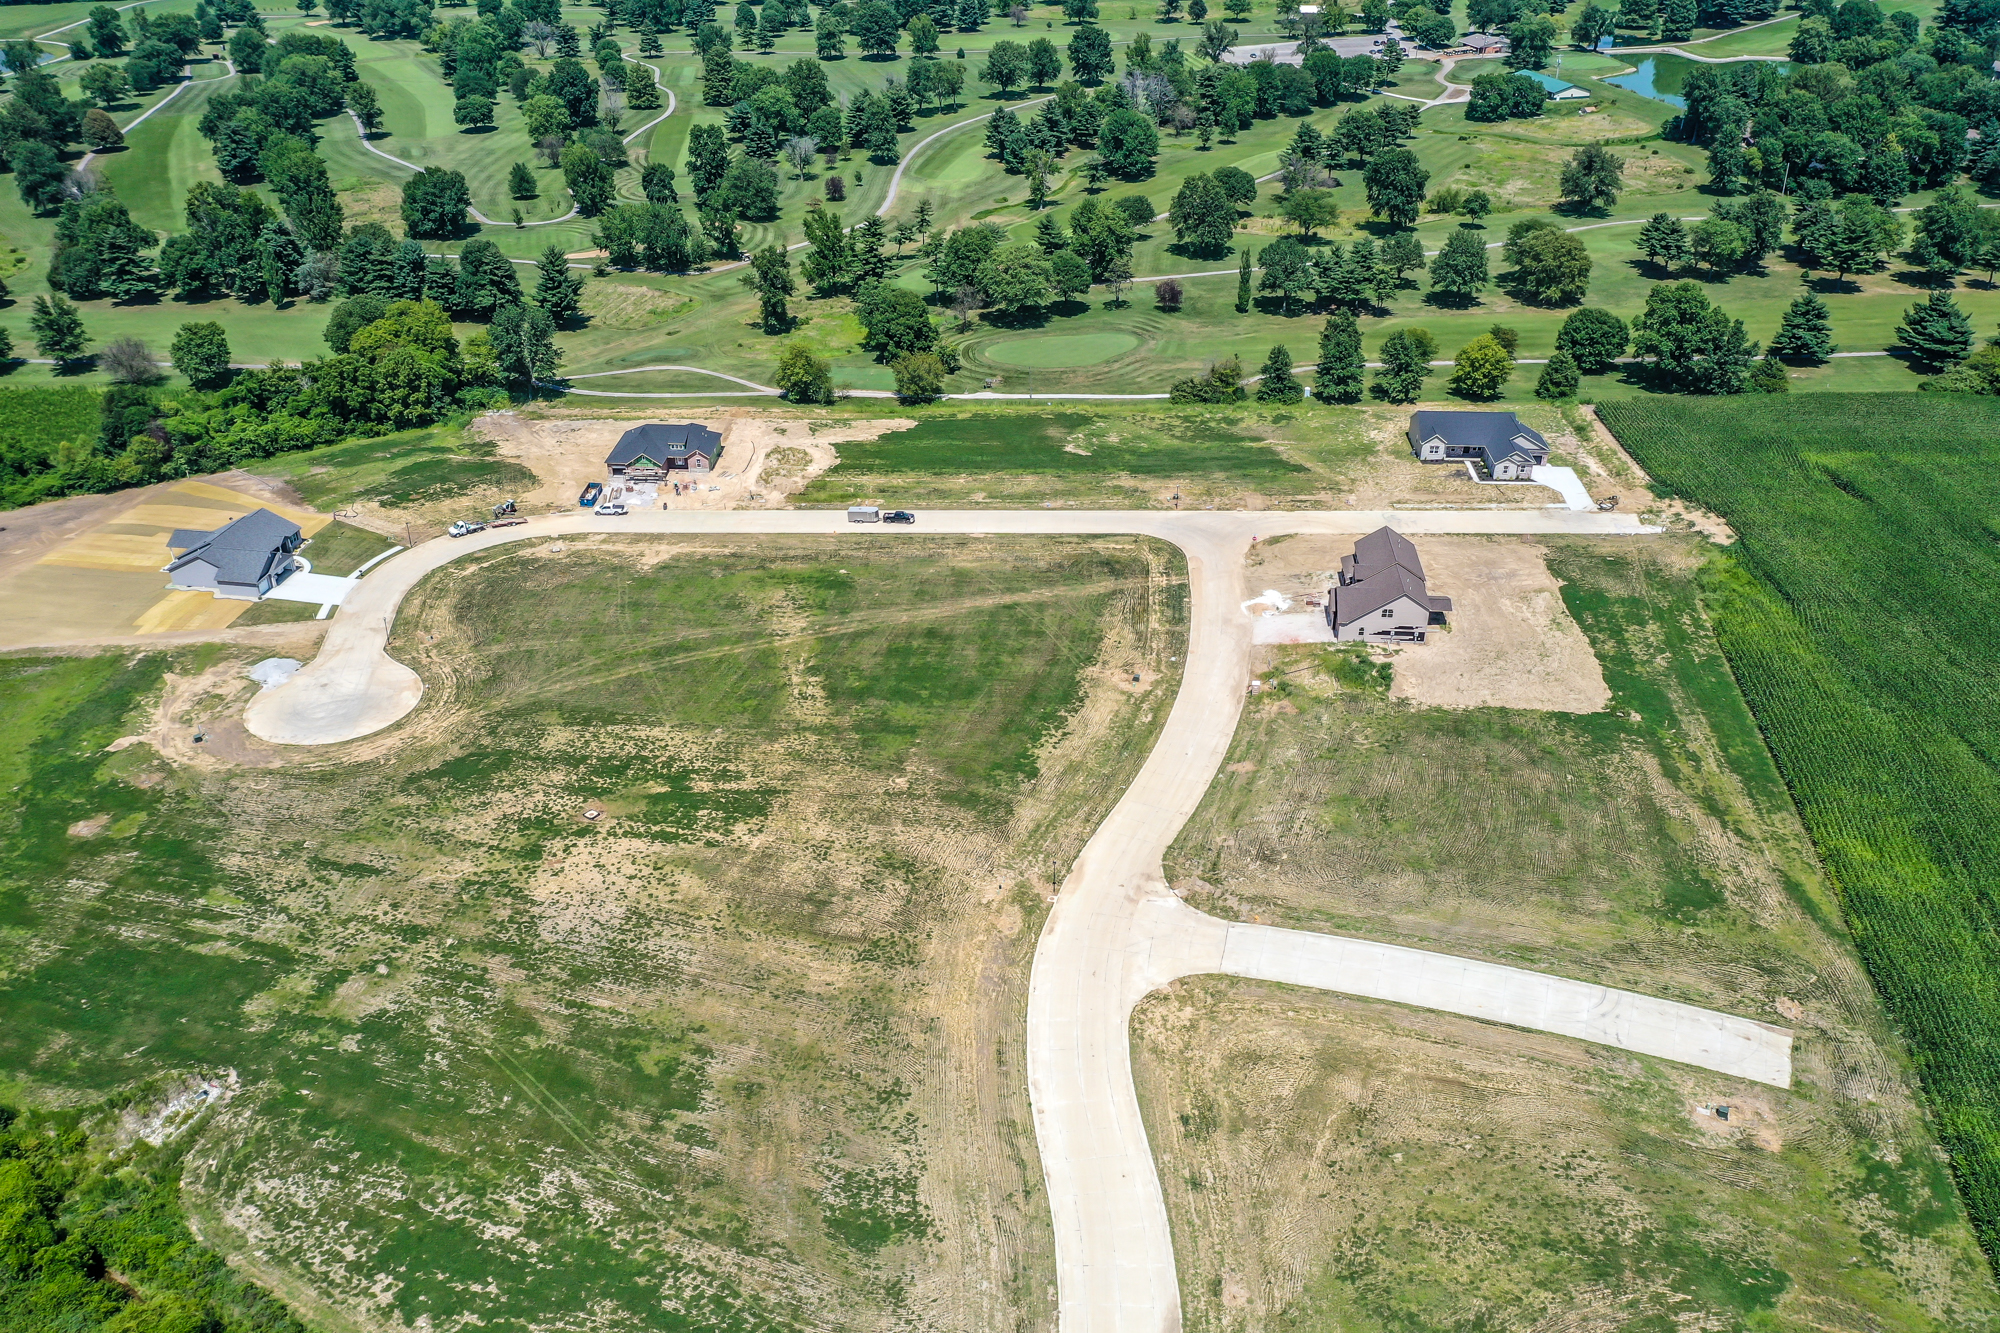 New_Construction_Homes_For_Sale_Shiloh_Illinois_Near_Scott_AFB-27.jpg